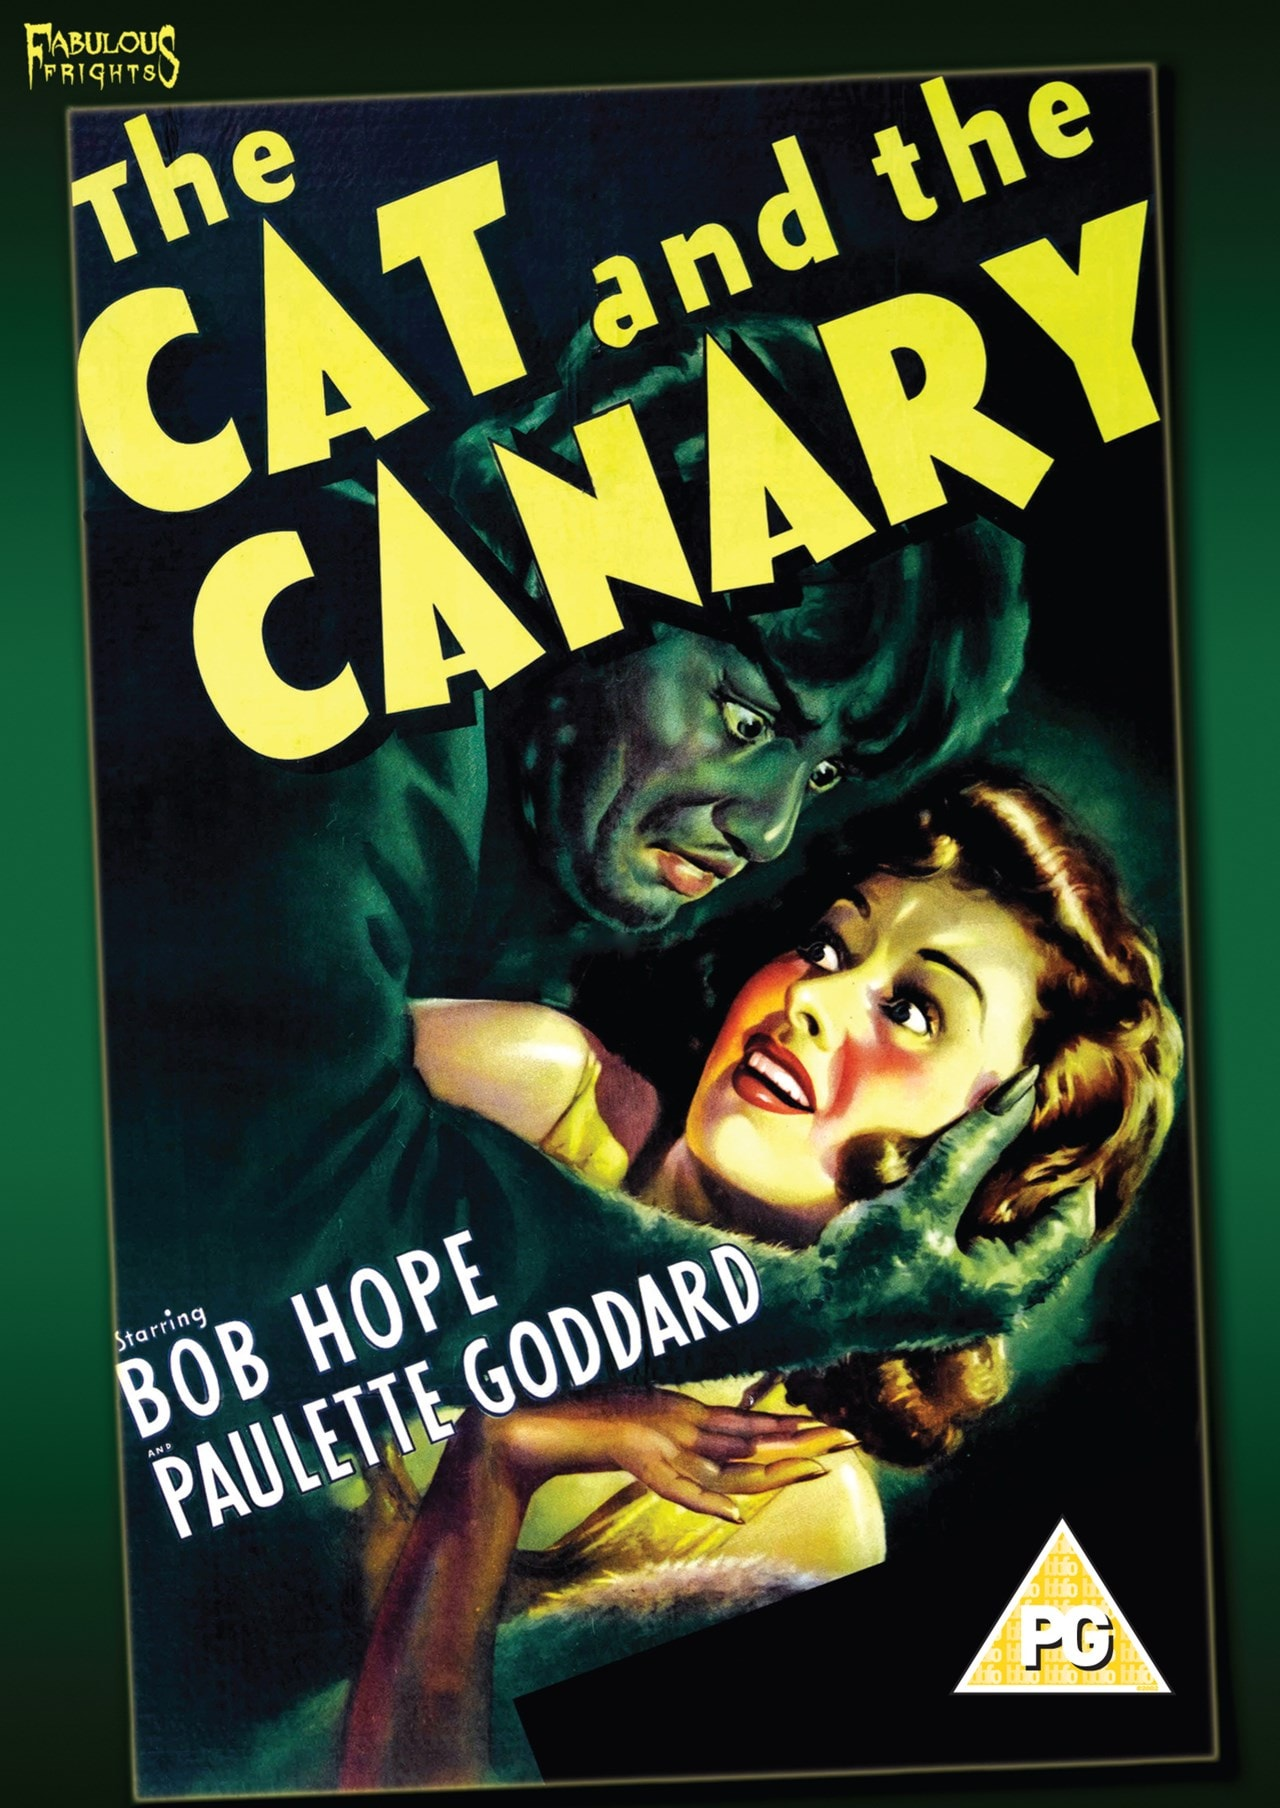 The Cat and the Canary - 1